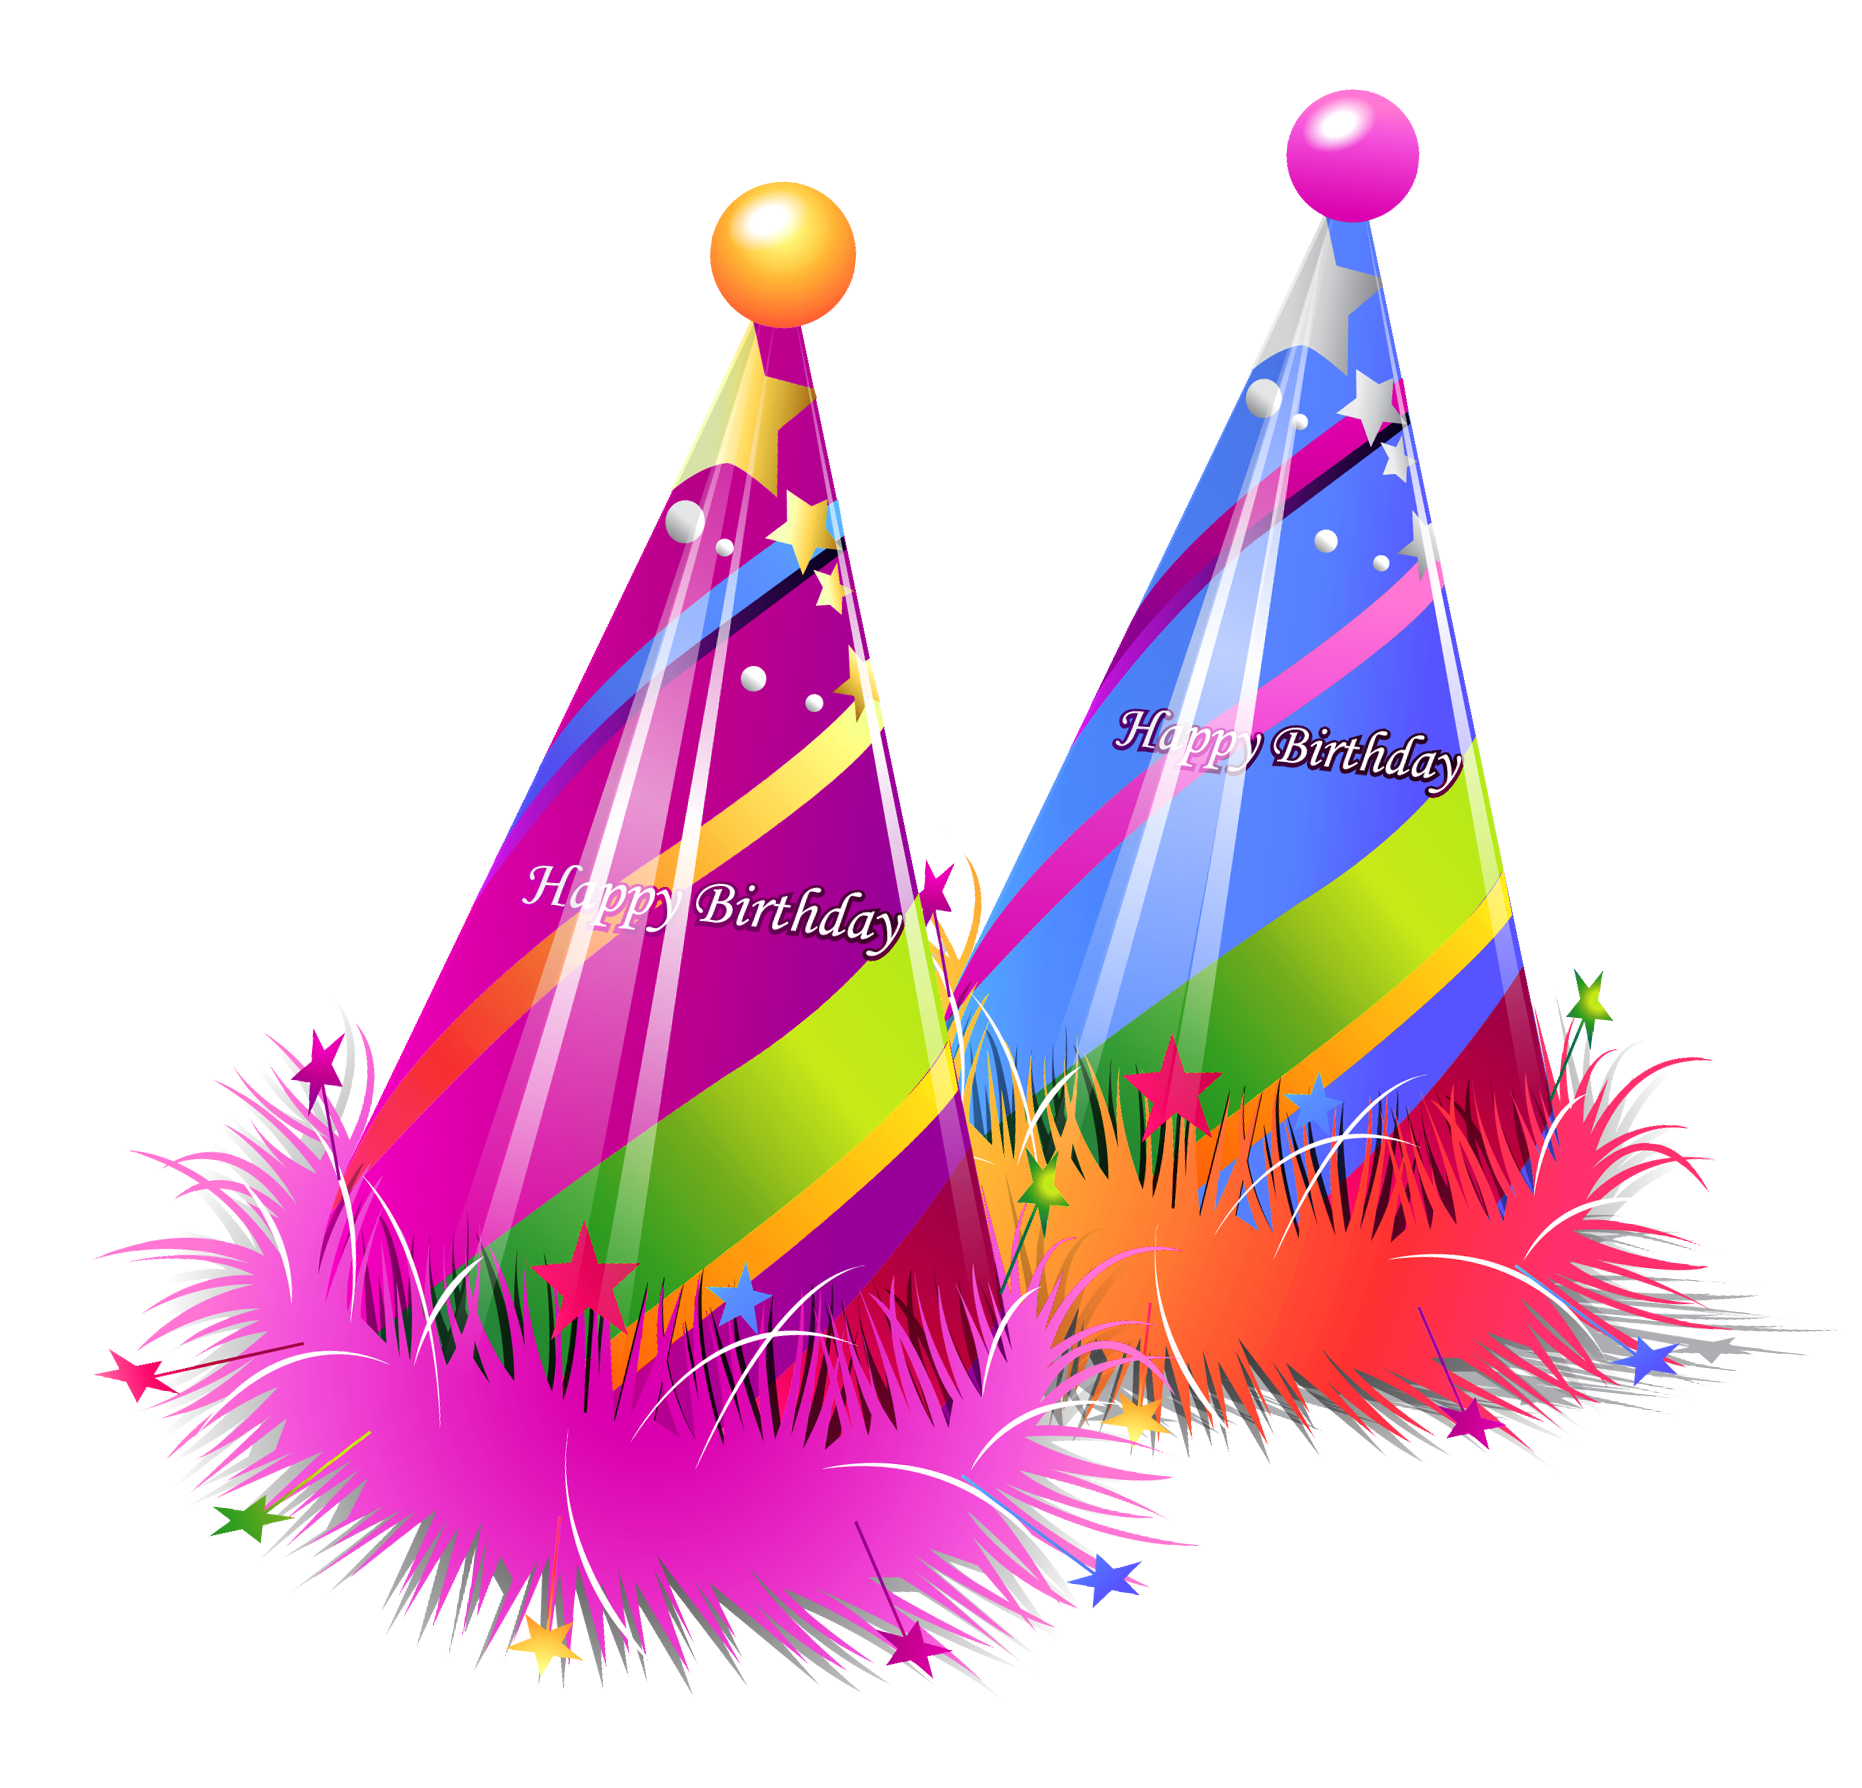 Tree clipart atis. Happy birthday party hats